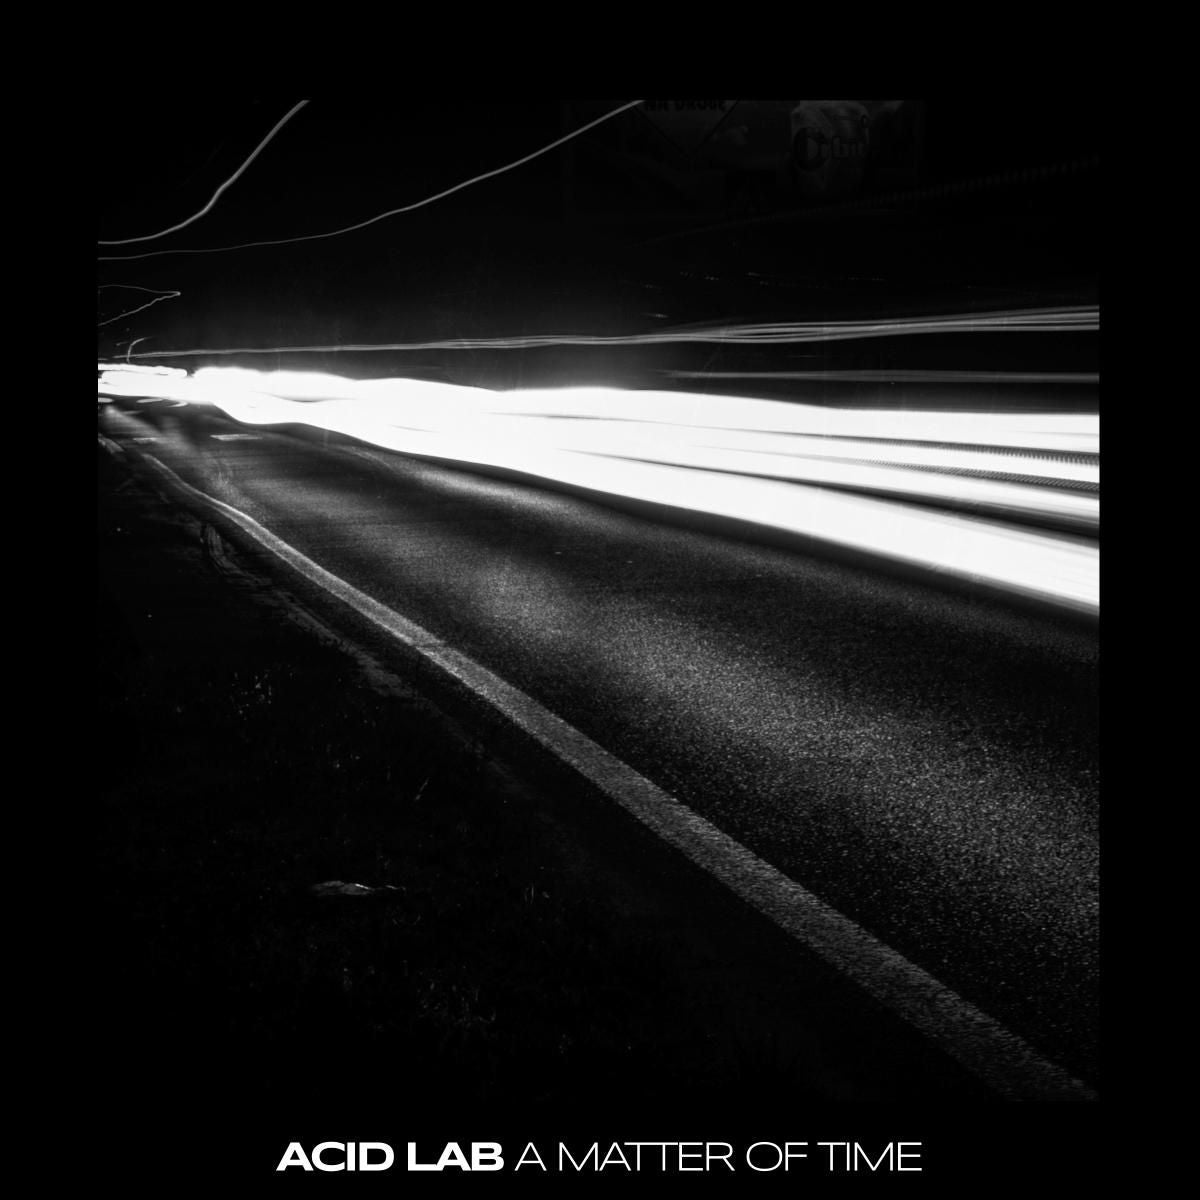 Acid Lab - A Matter of Time [Black & Clear Mixed Vinyl]